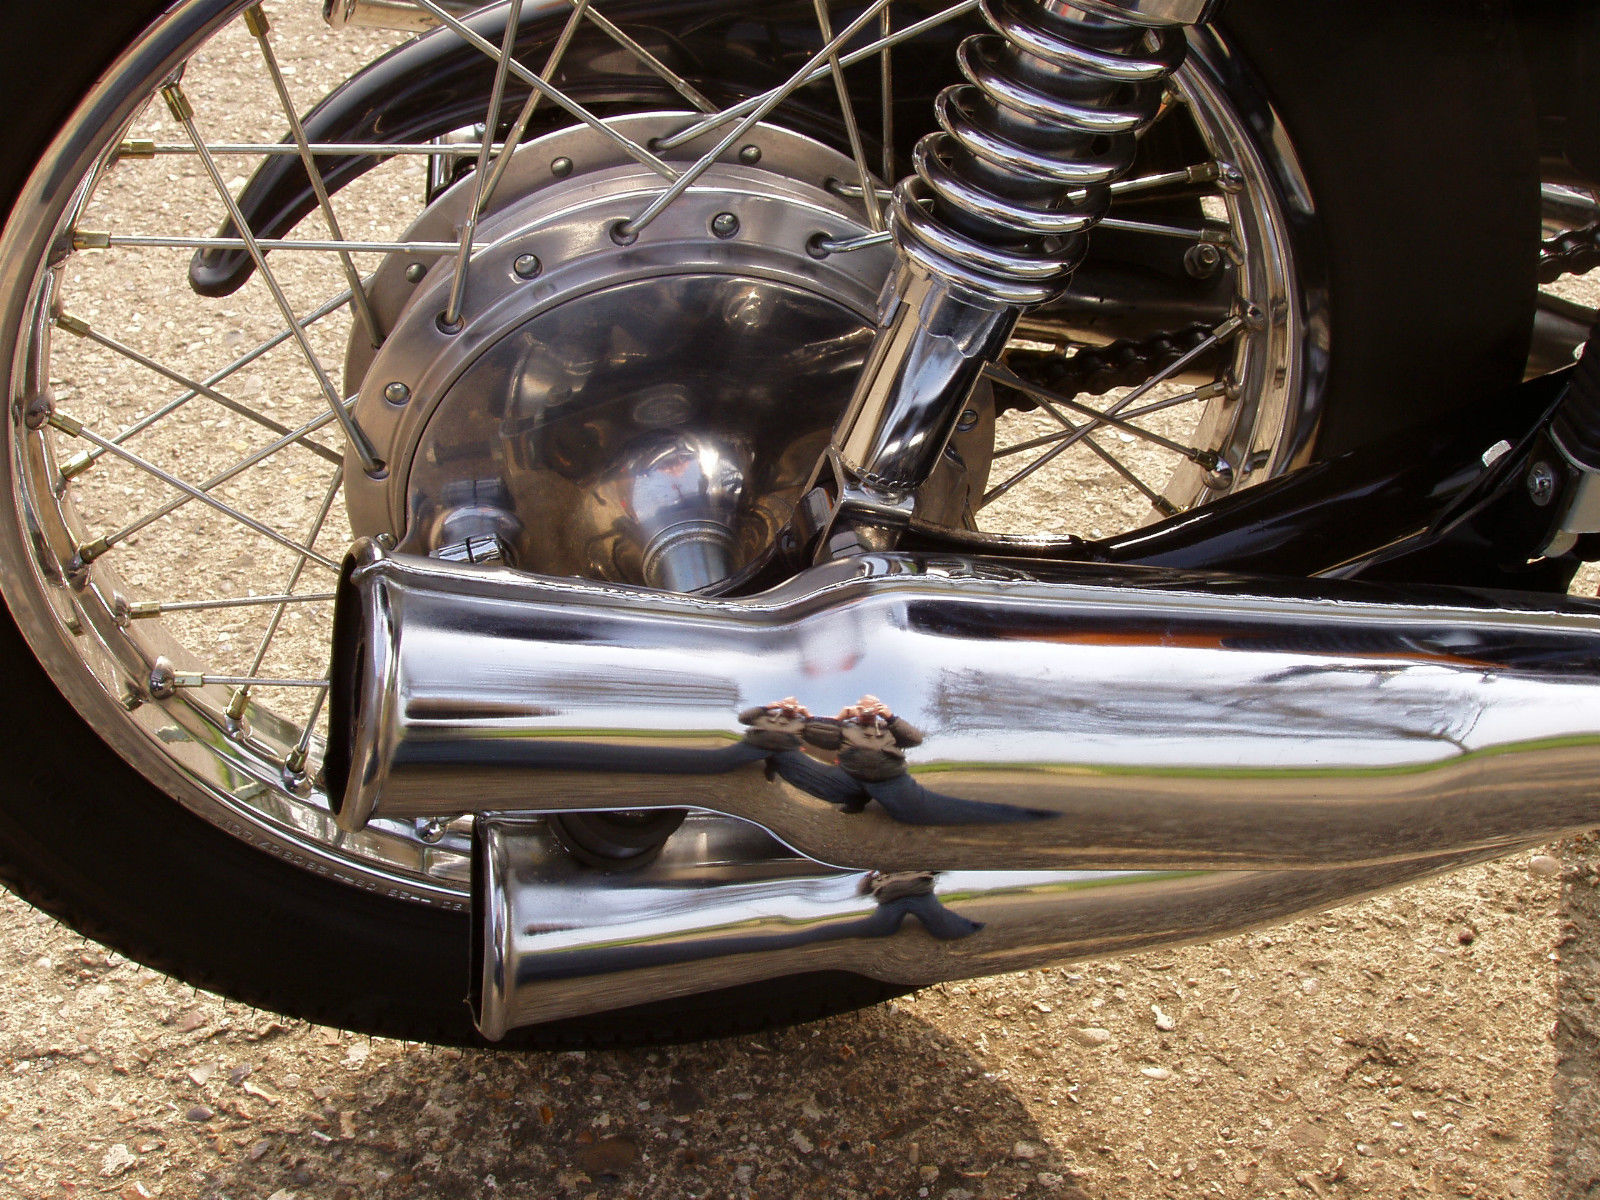 Honda CB500 Four - 1971 - Rear Brake, Shock Absorber and Exhausts.